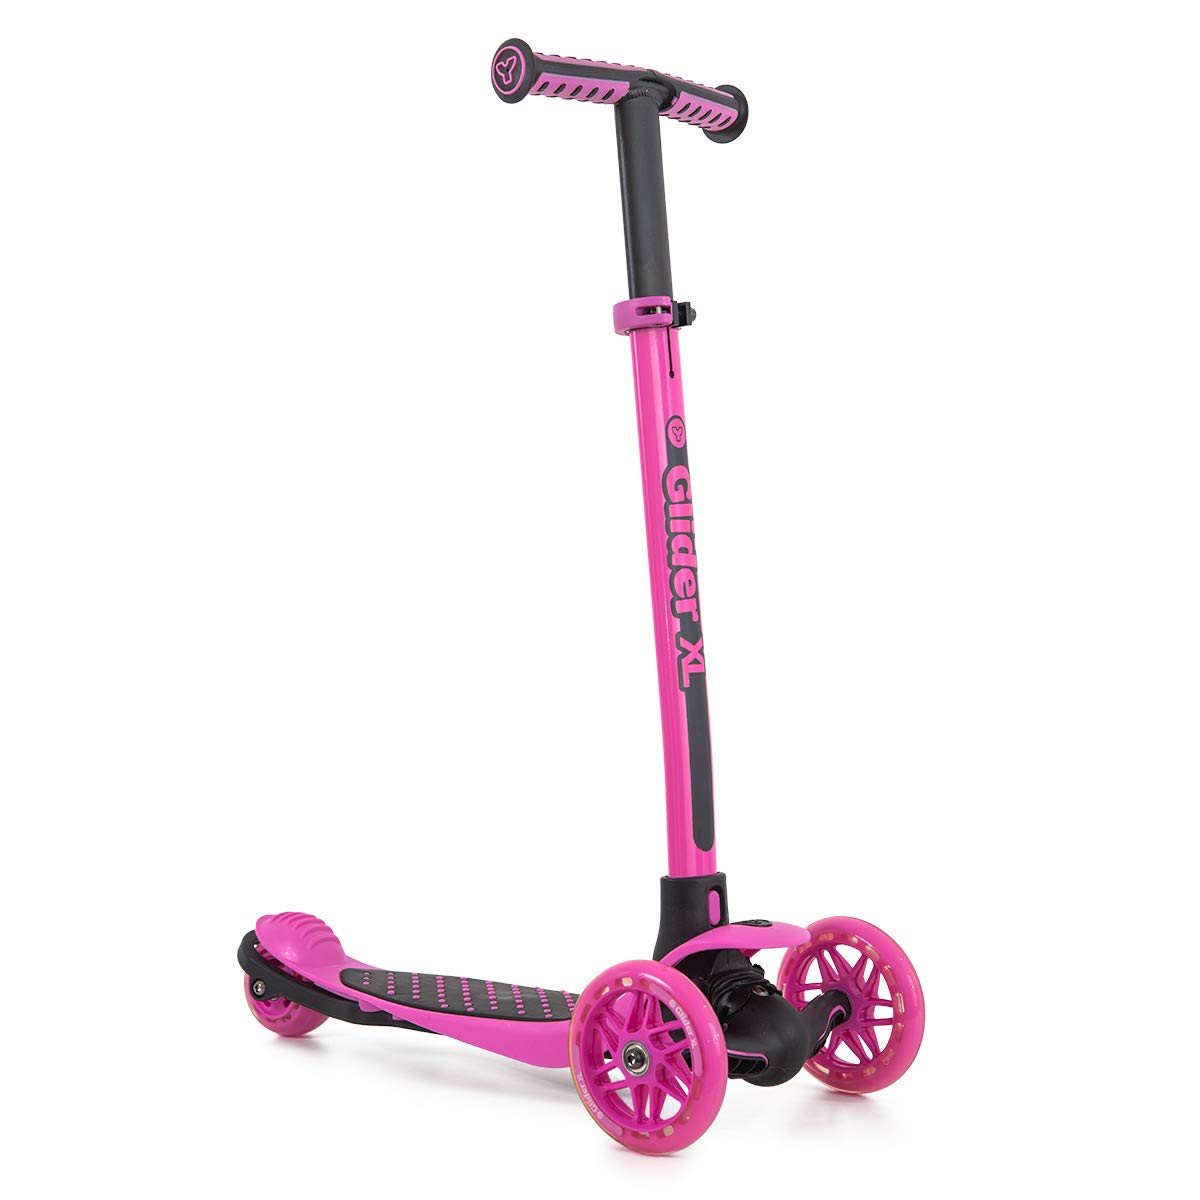 Yvolution Y Glider XL | 3 Wheeled Scooter for Boys and Girls Age 3-8 Years | Extra-Wide Deck